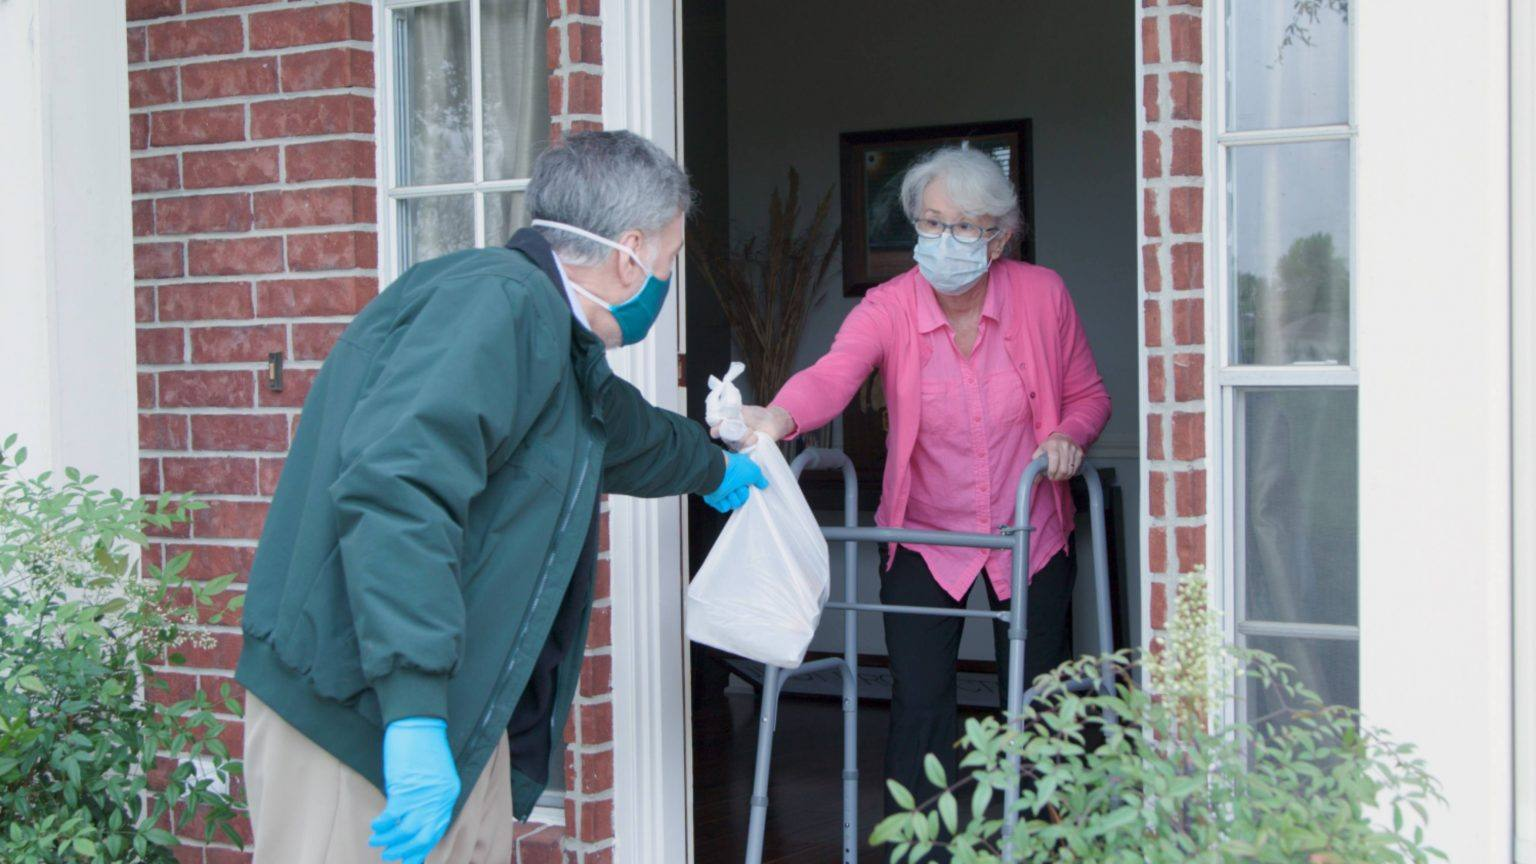 a-white-middle-aged-man-wearing-a-mask-and-gloves-delievering-food-to-an-older-white-woman-also-wearing-a-mask-at-her-front-door-during-COVID-19-pandemic-16x9-1-1536x864